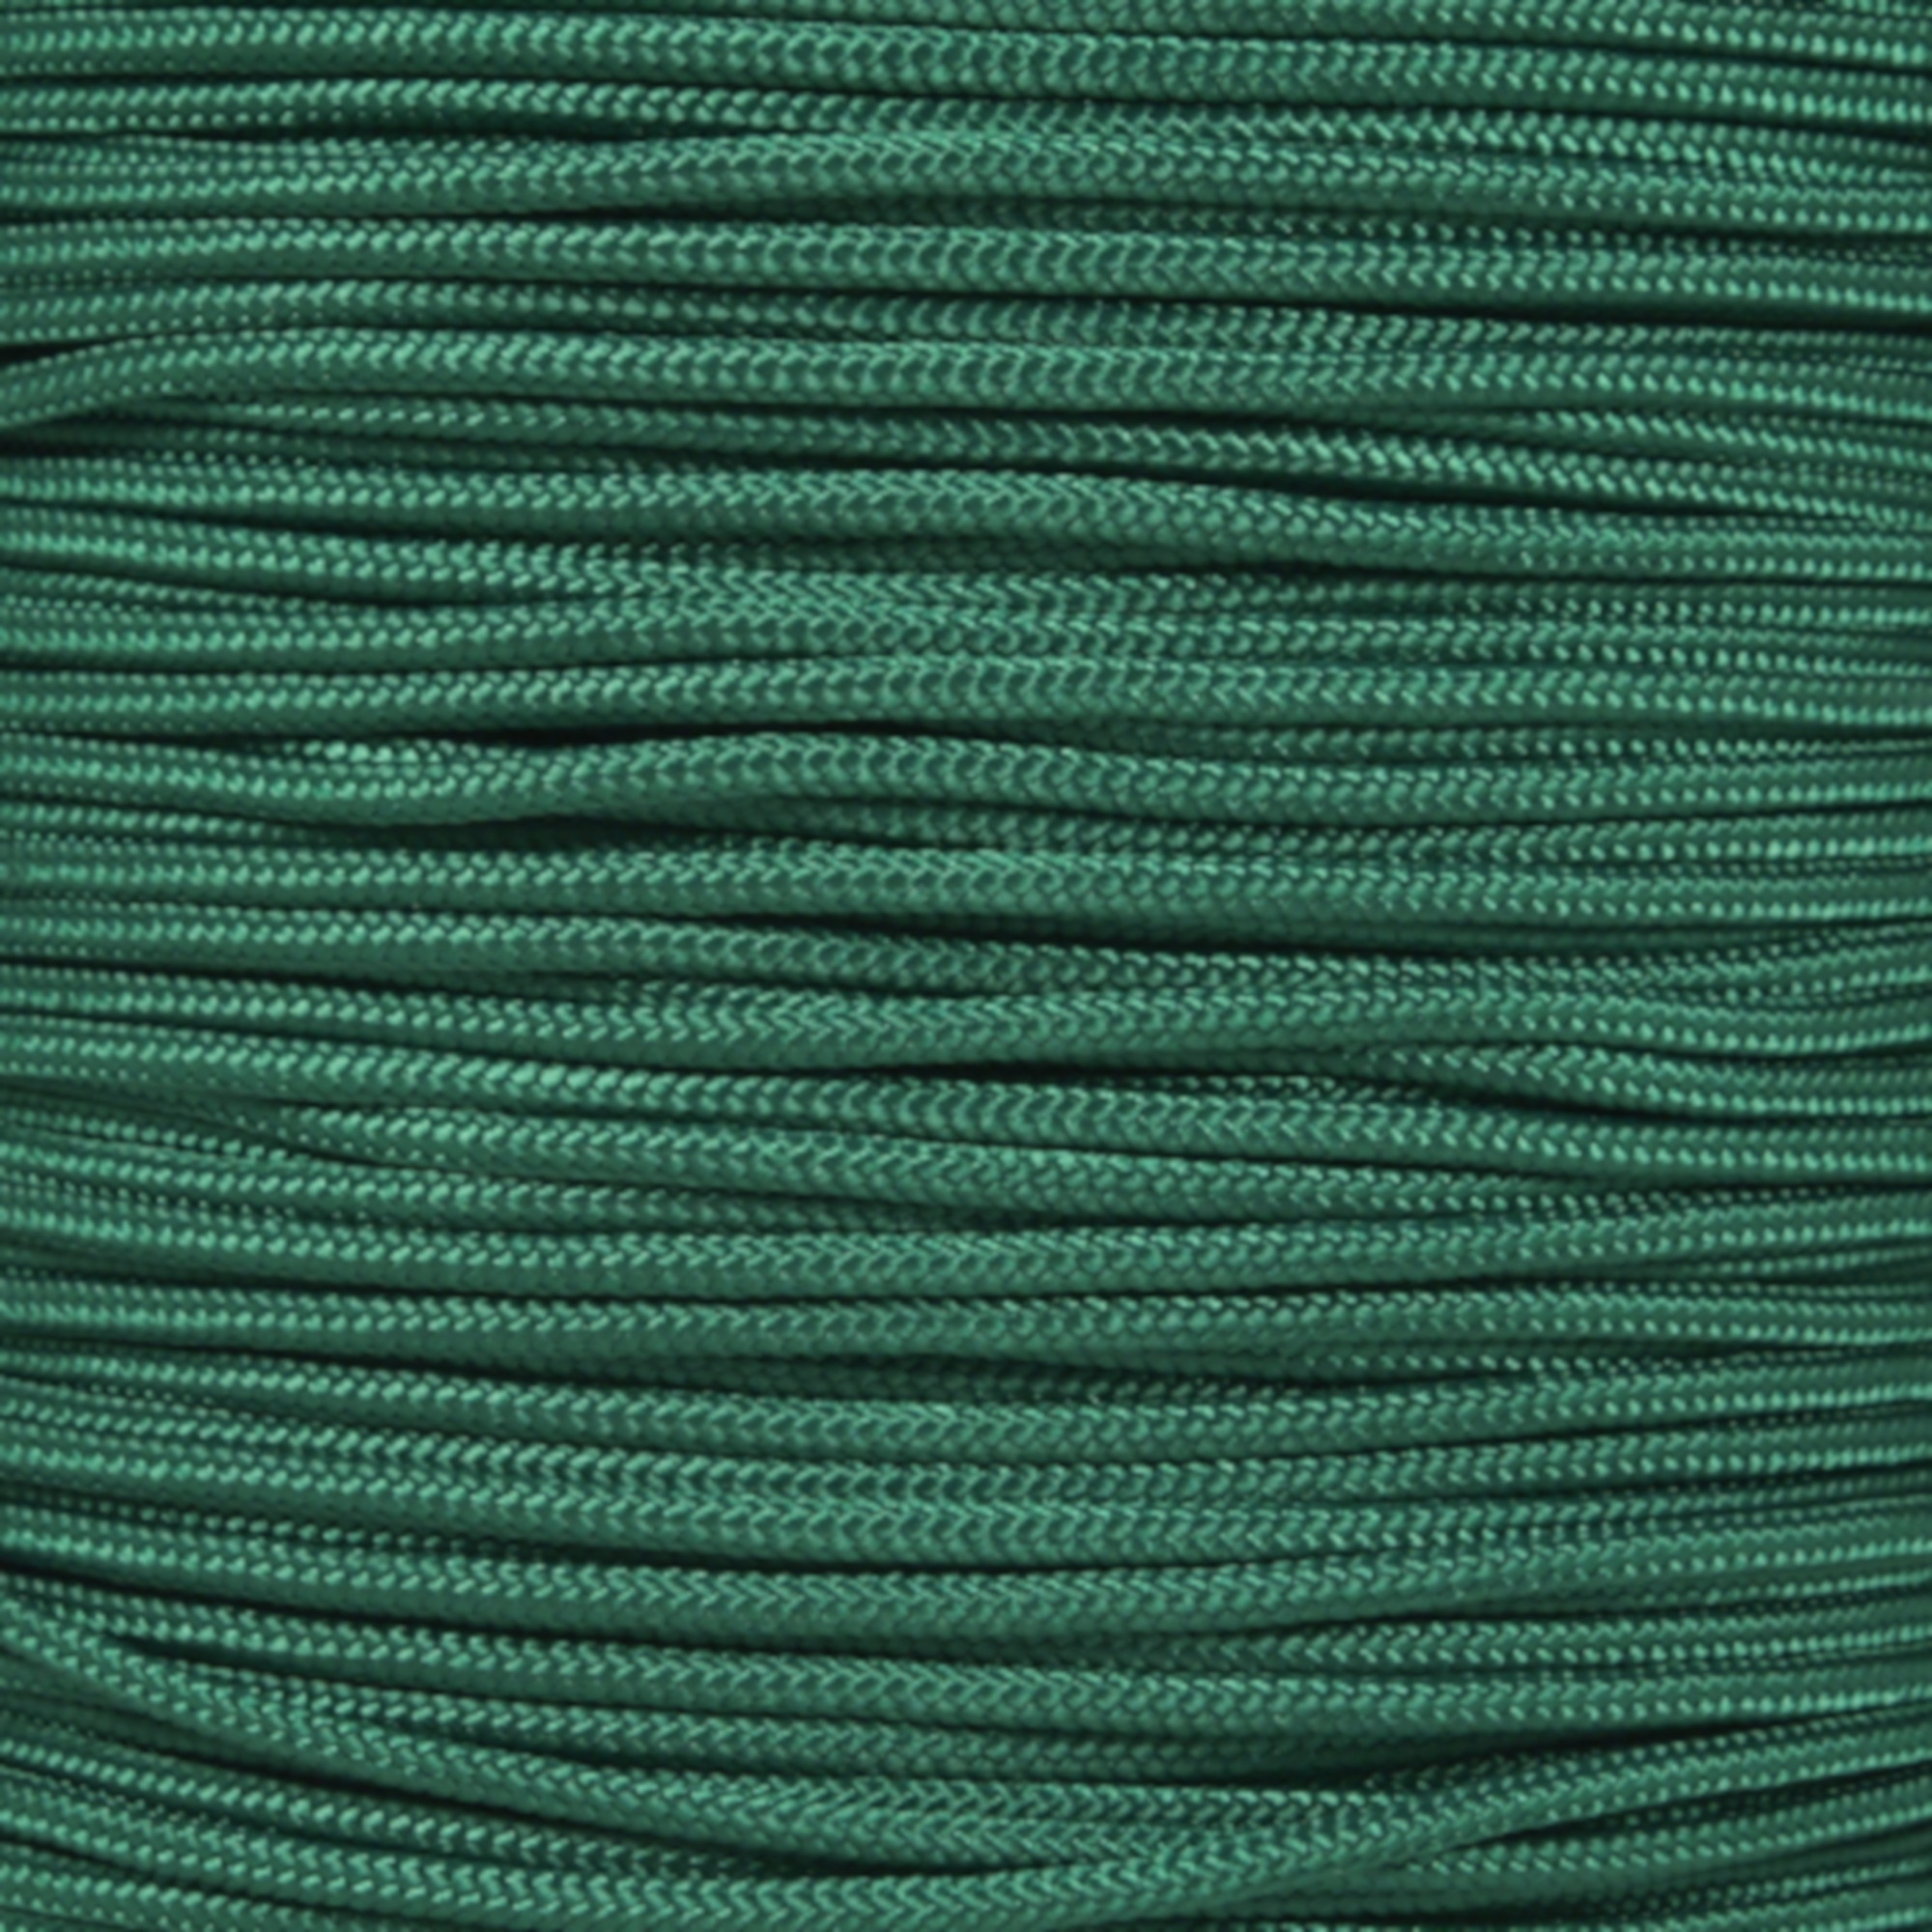 Paracord Planet's Commercial Grade 425lb Tensile Strength Paracord Various Sizes and Colors